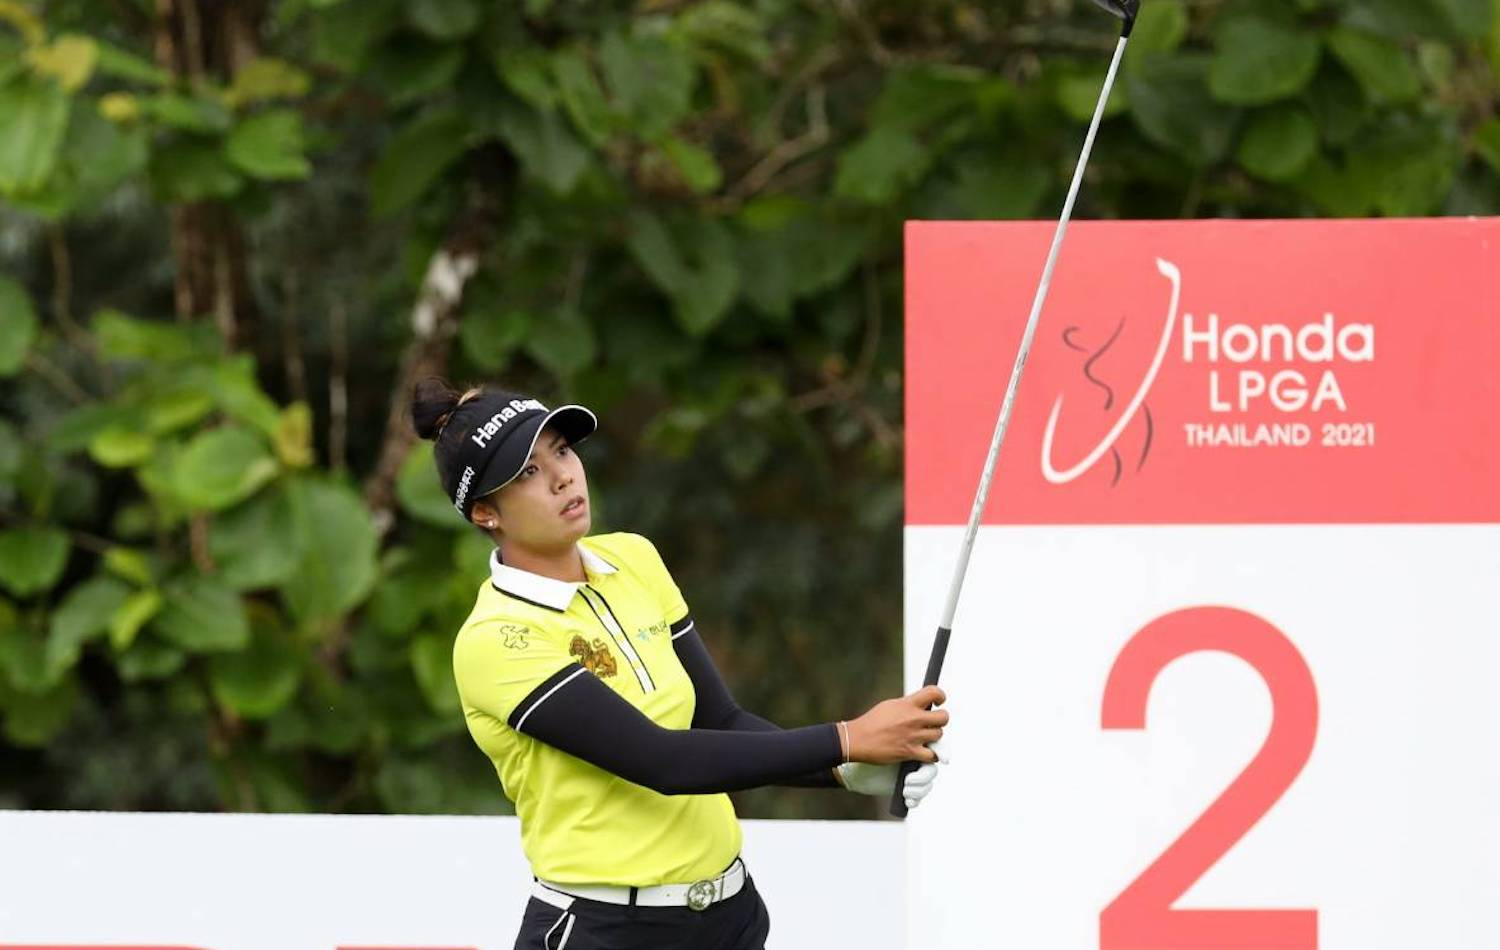 Patty takes 3-shot lead in Chon Buri